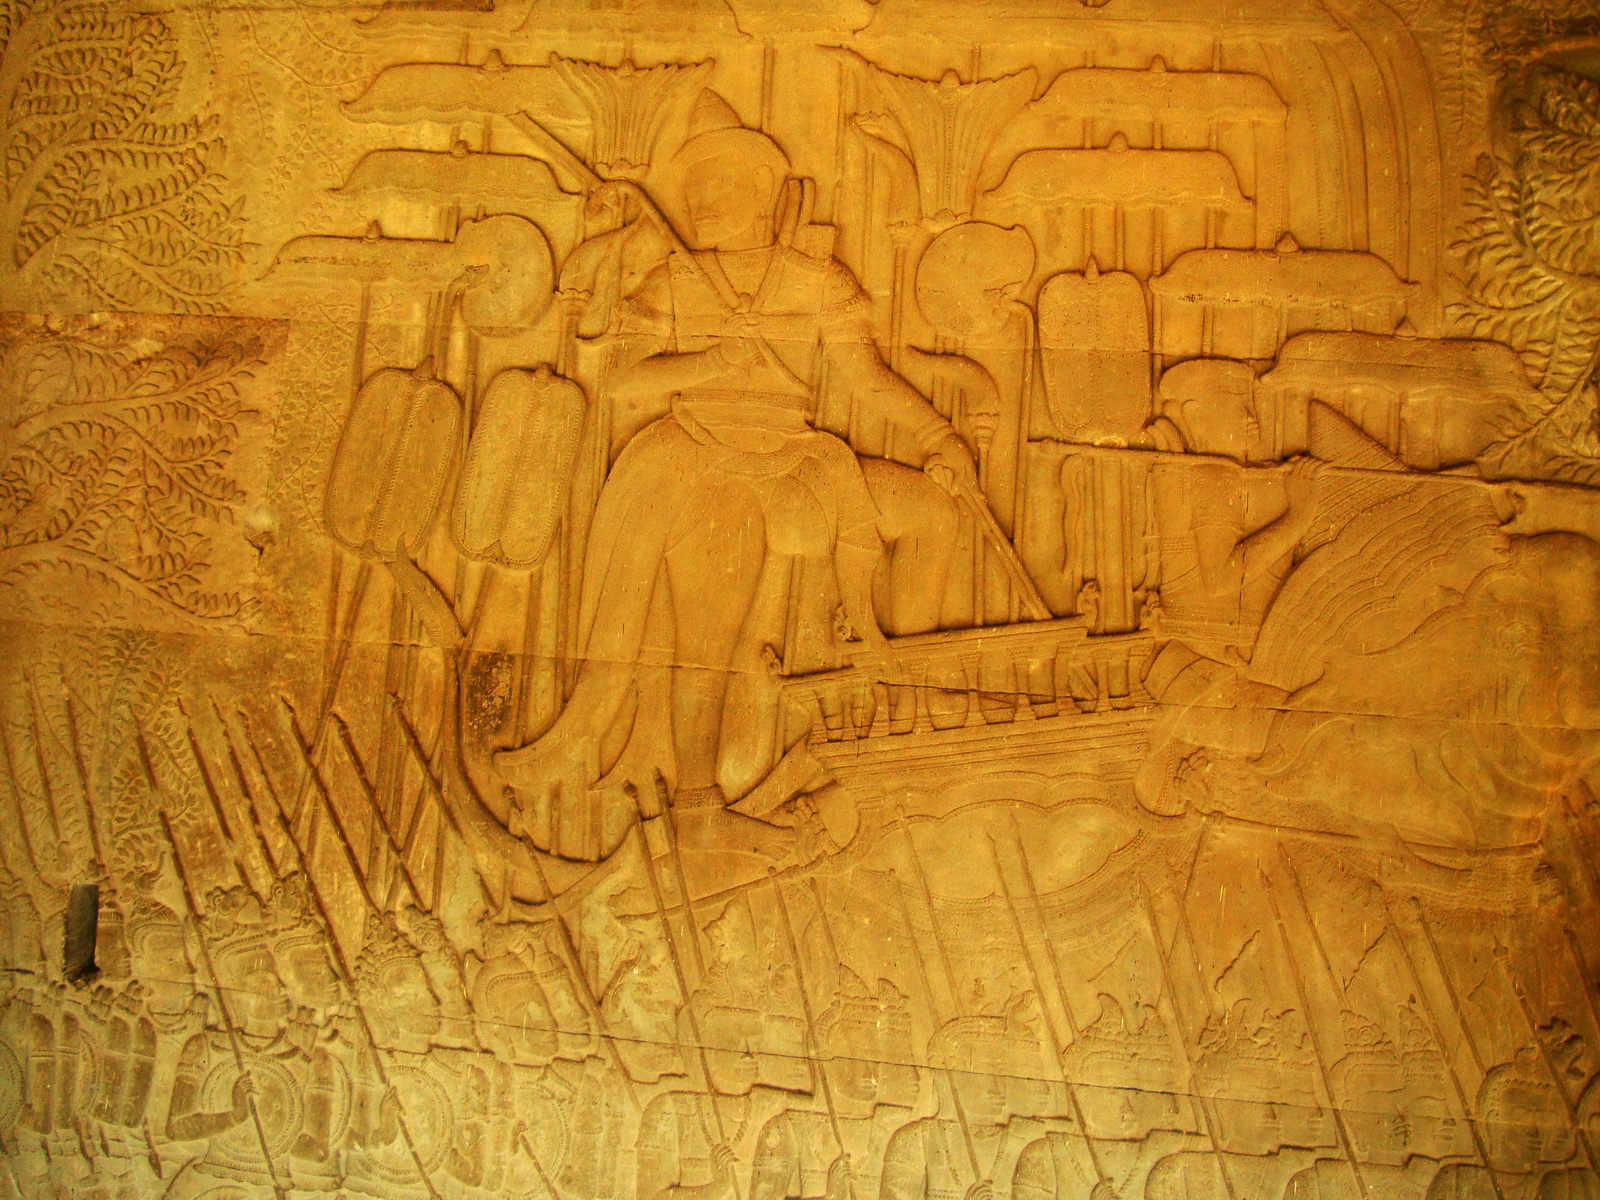 Angkor Wat Bas relief S Gallery W Wing Historic Procession 077